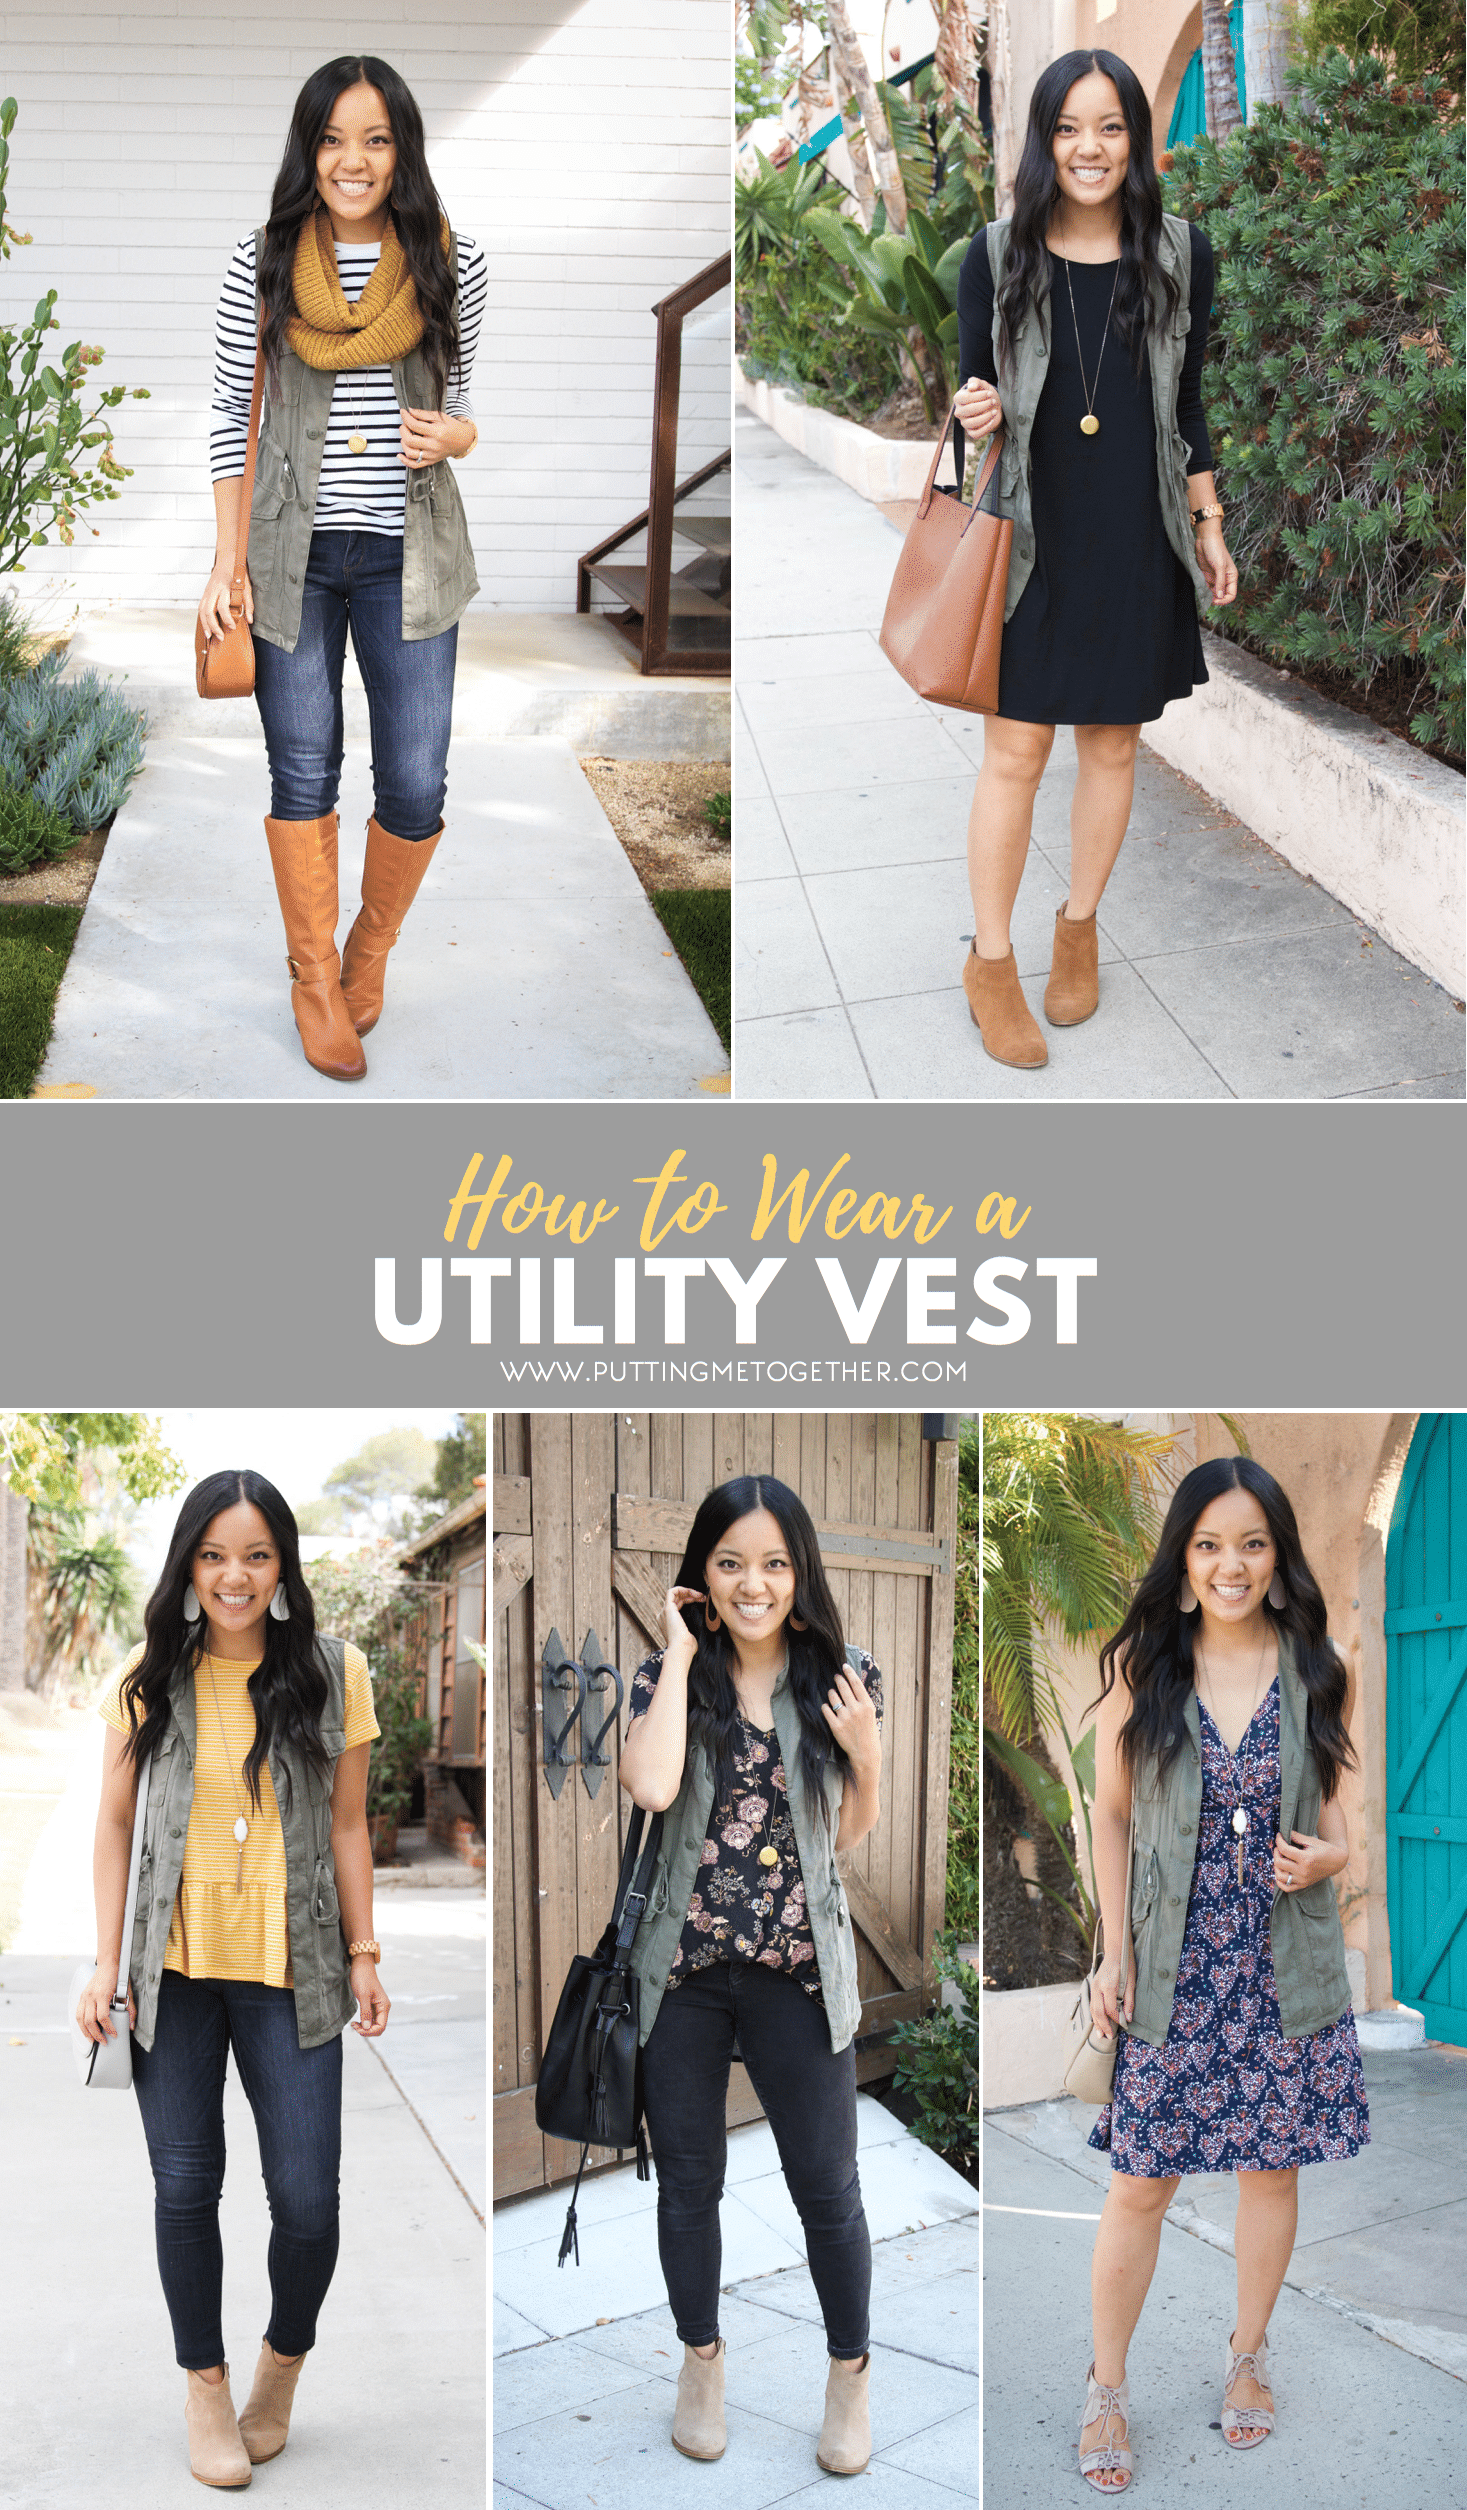 d821949d402 5 Ways to Wear a Utility Vest + Tips for Finding One